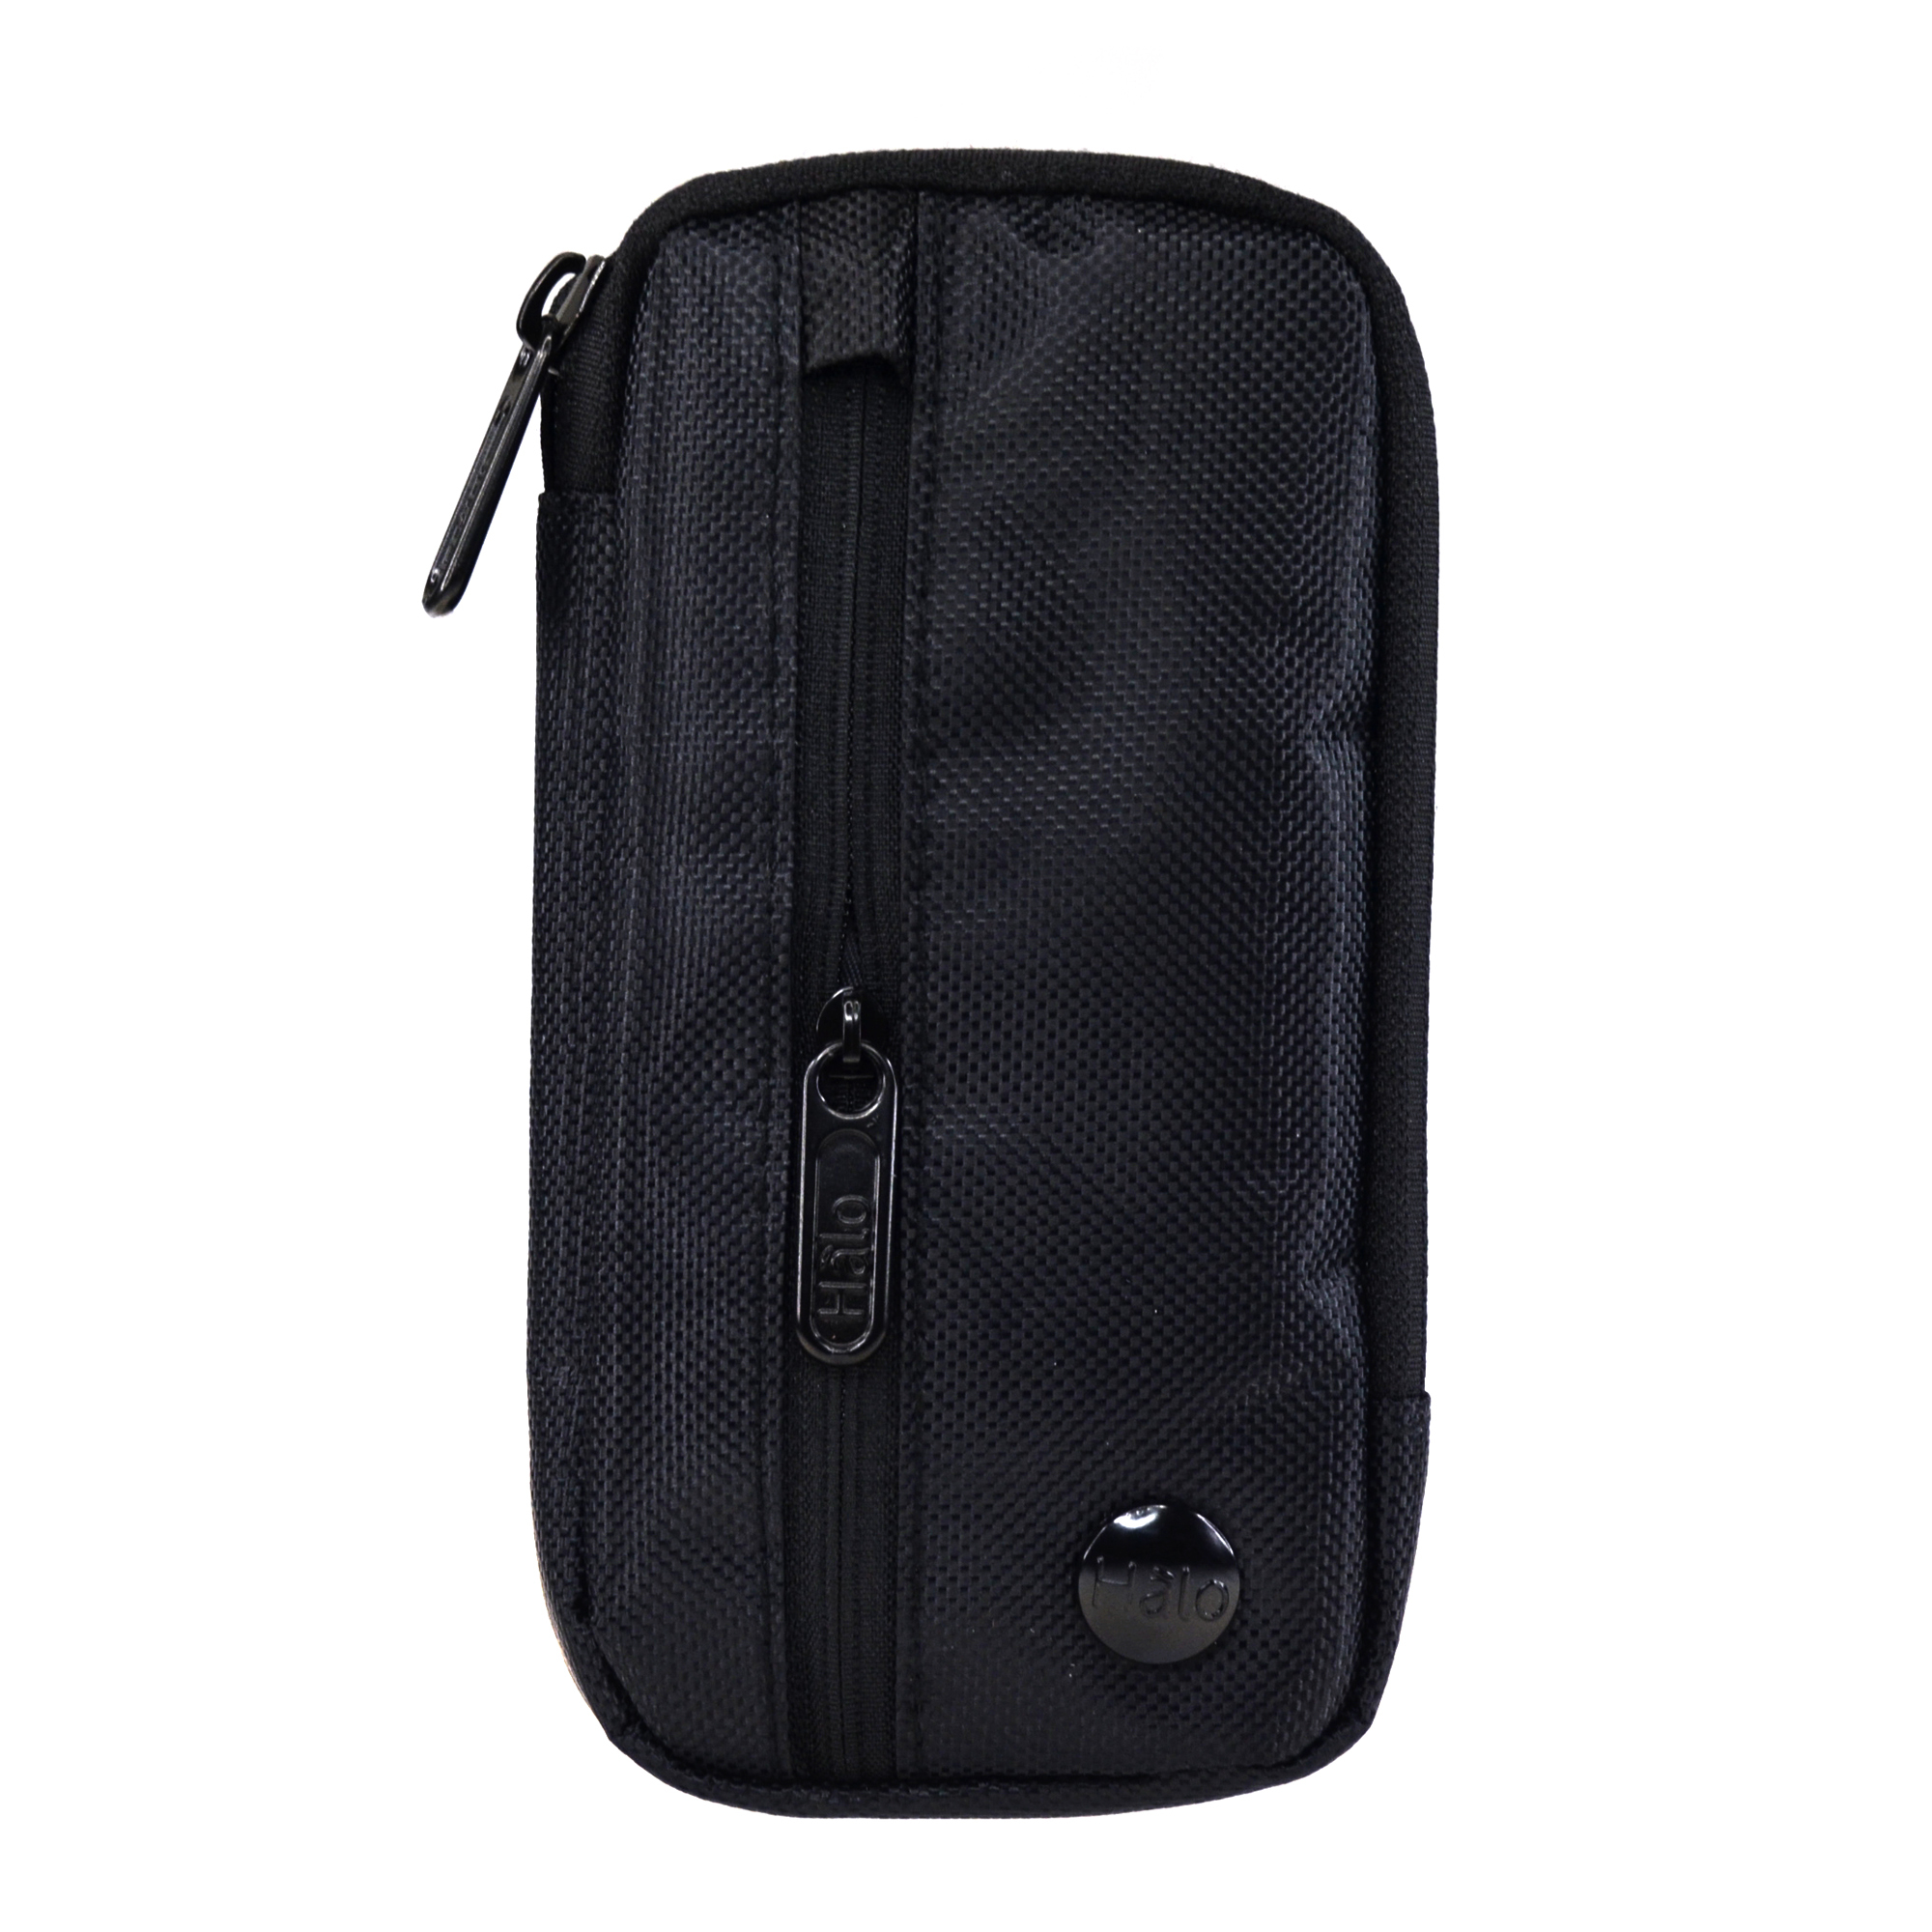 Halo Skyler Pouch (Black) product preview, discount at cheapest price